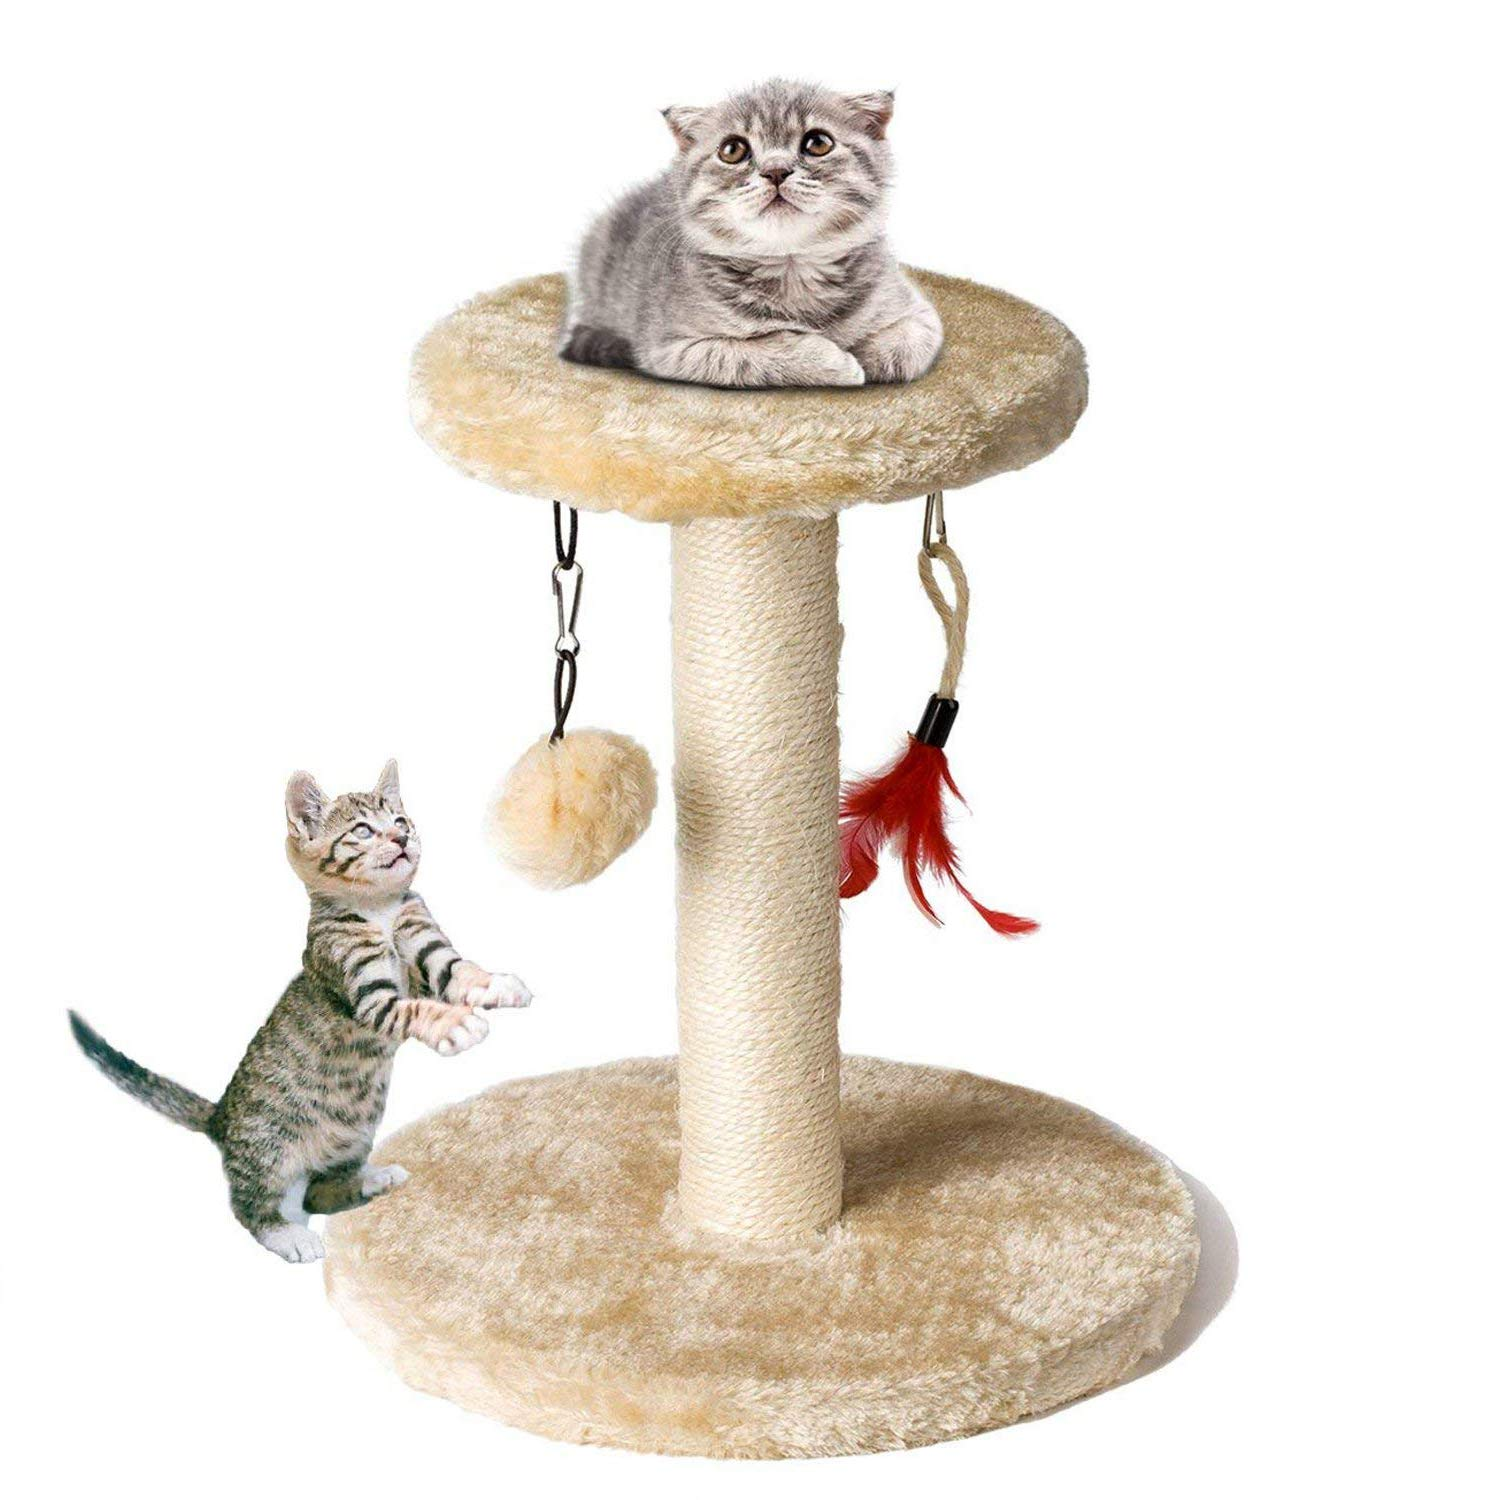 Cat Tree Tower, Zubita Cat Climber Shelf Pet Kitty Furniture Scratching Post Climber House for Playing Relax and Sleep.